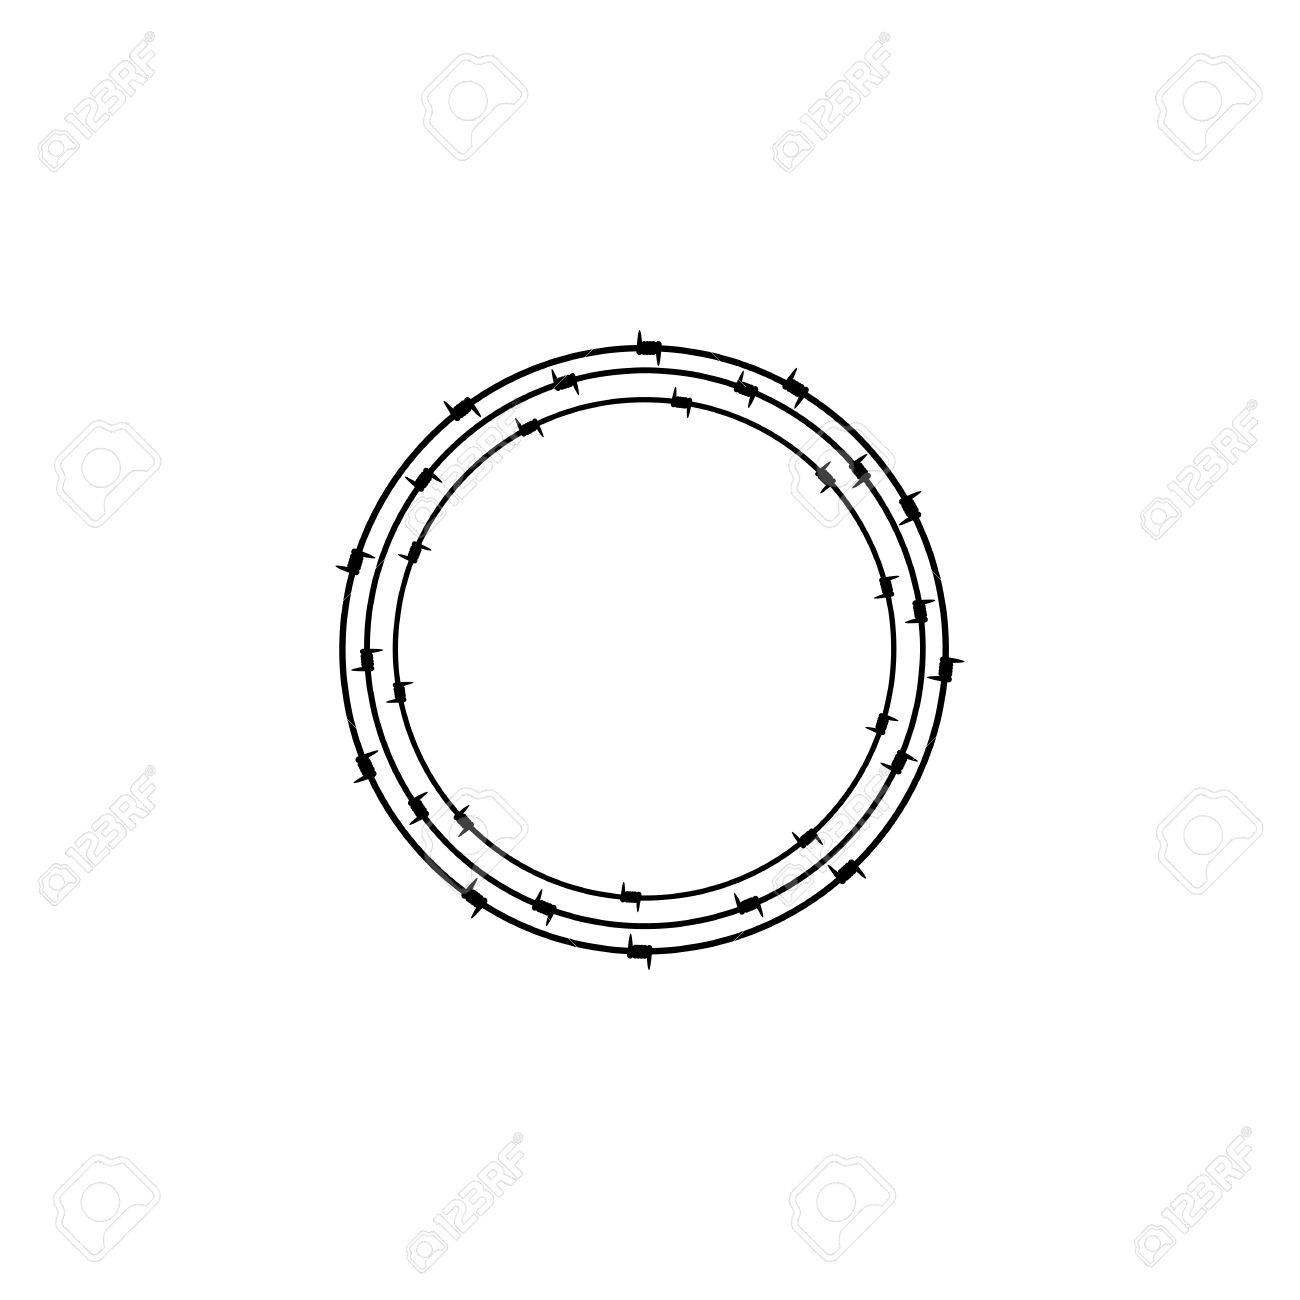 Exelent Barbed Wire Circle Clip Art Ensign - Electrical and Wiring ...